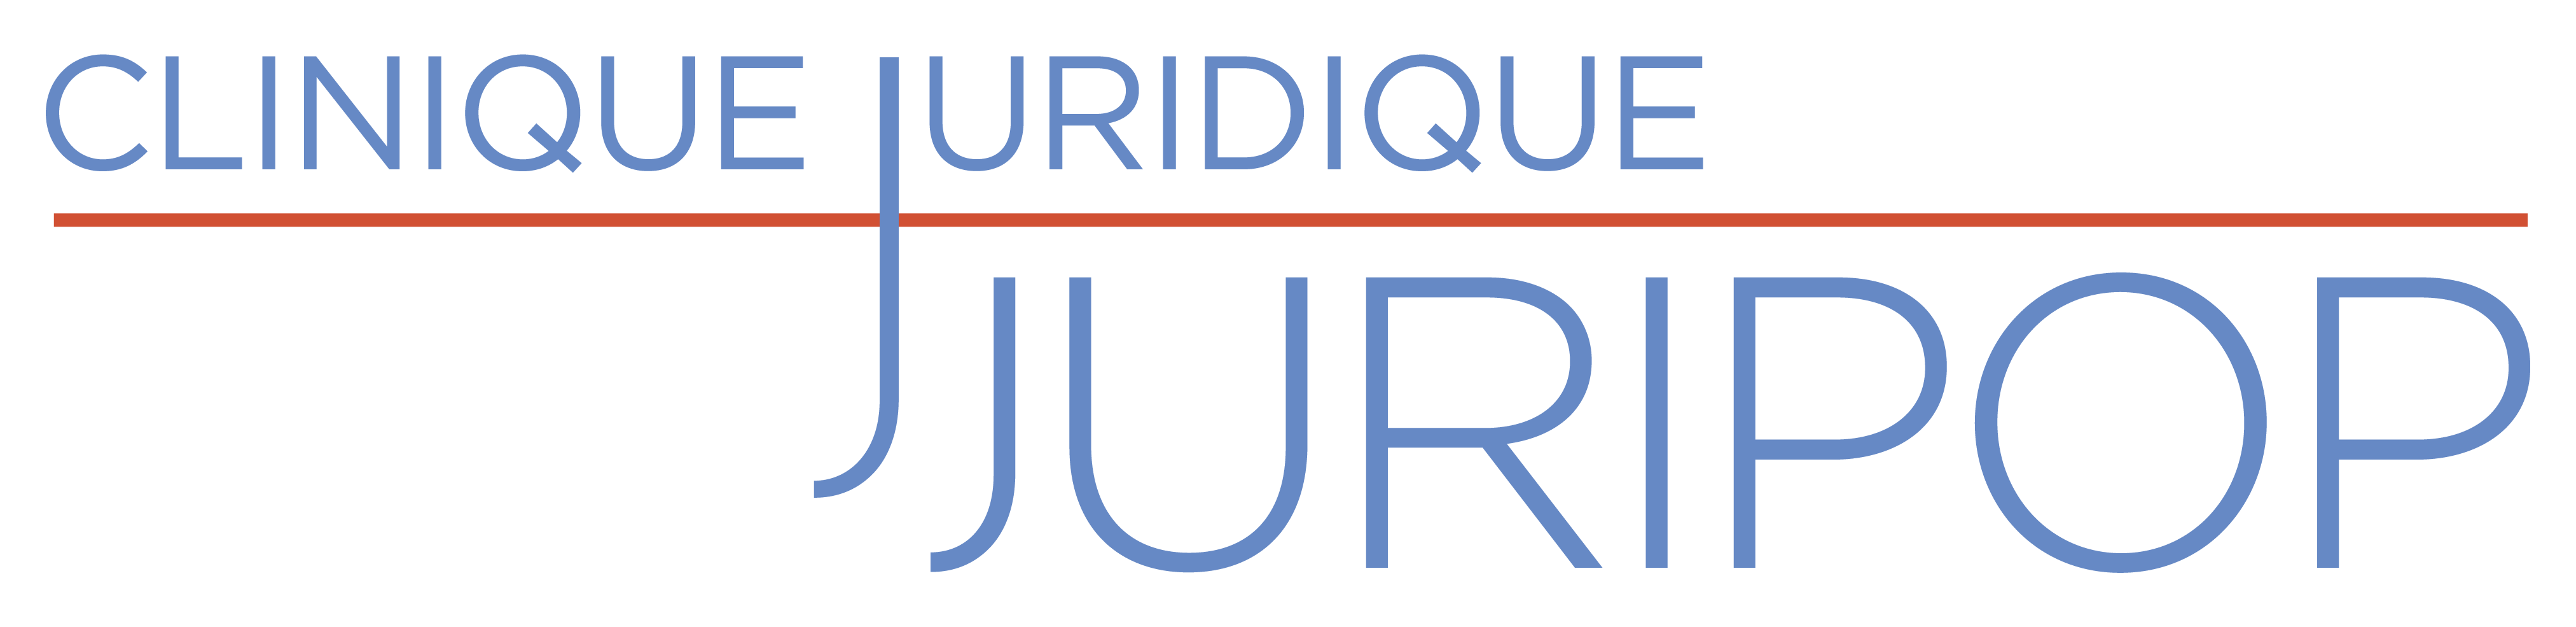 logo-clinique-juripop